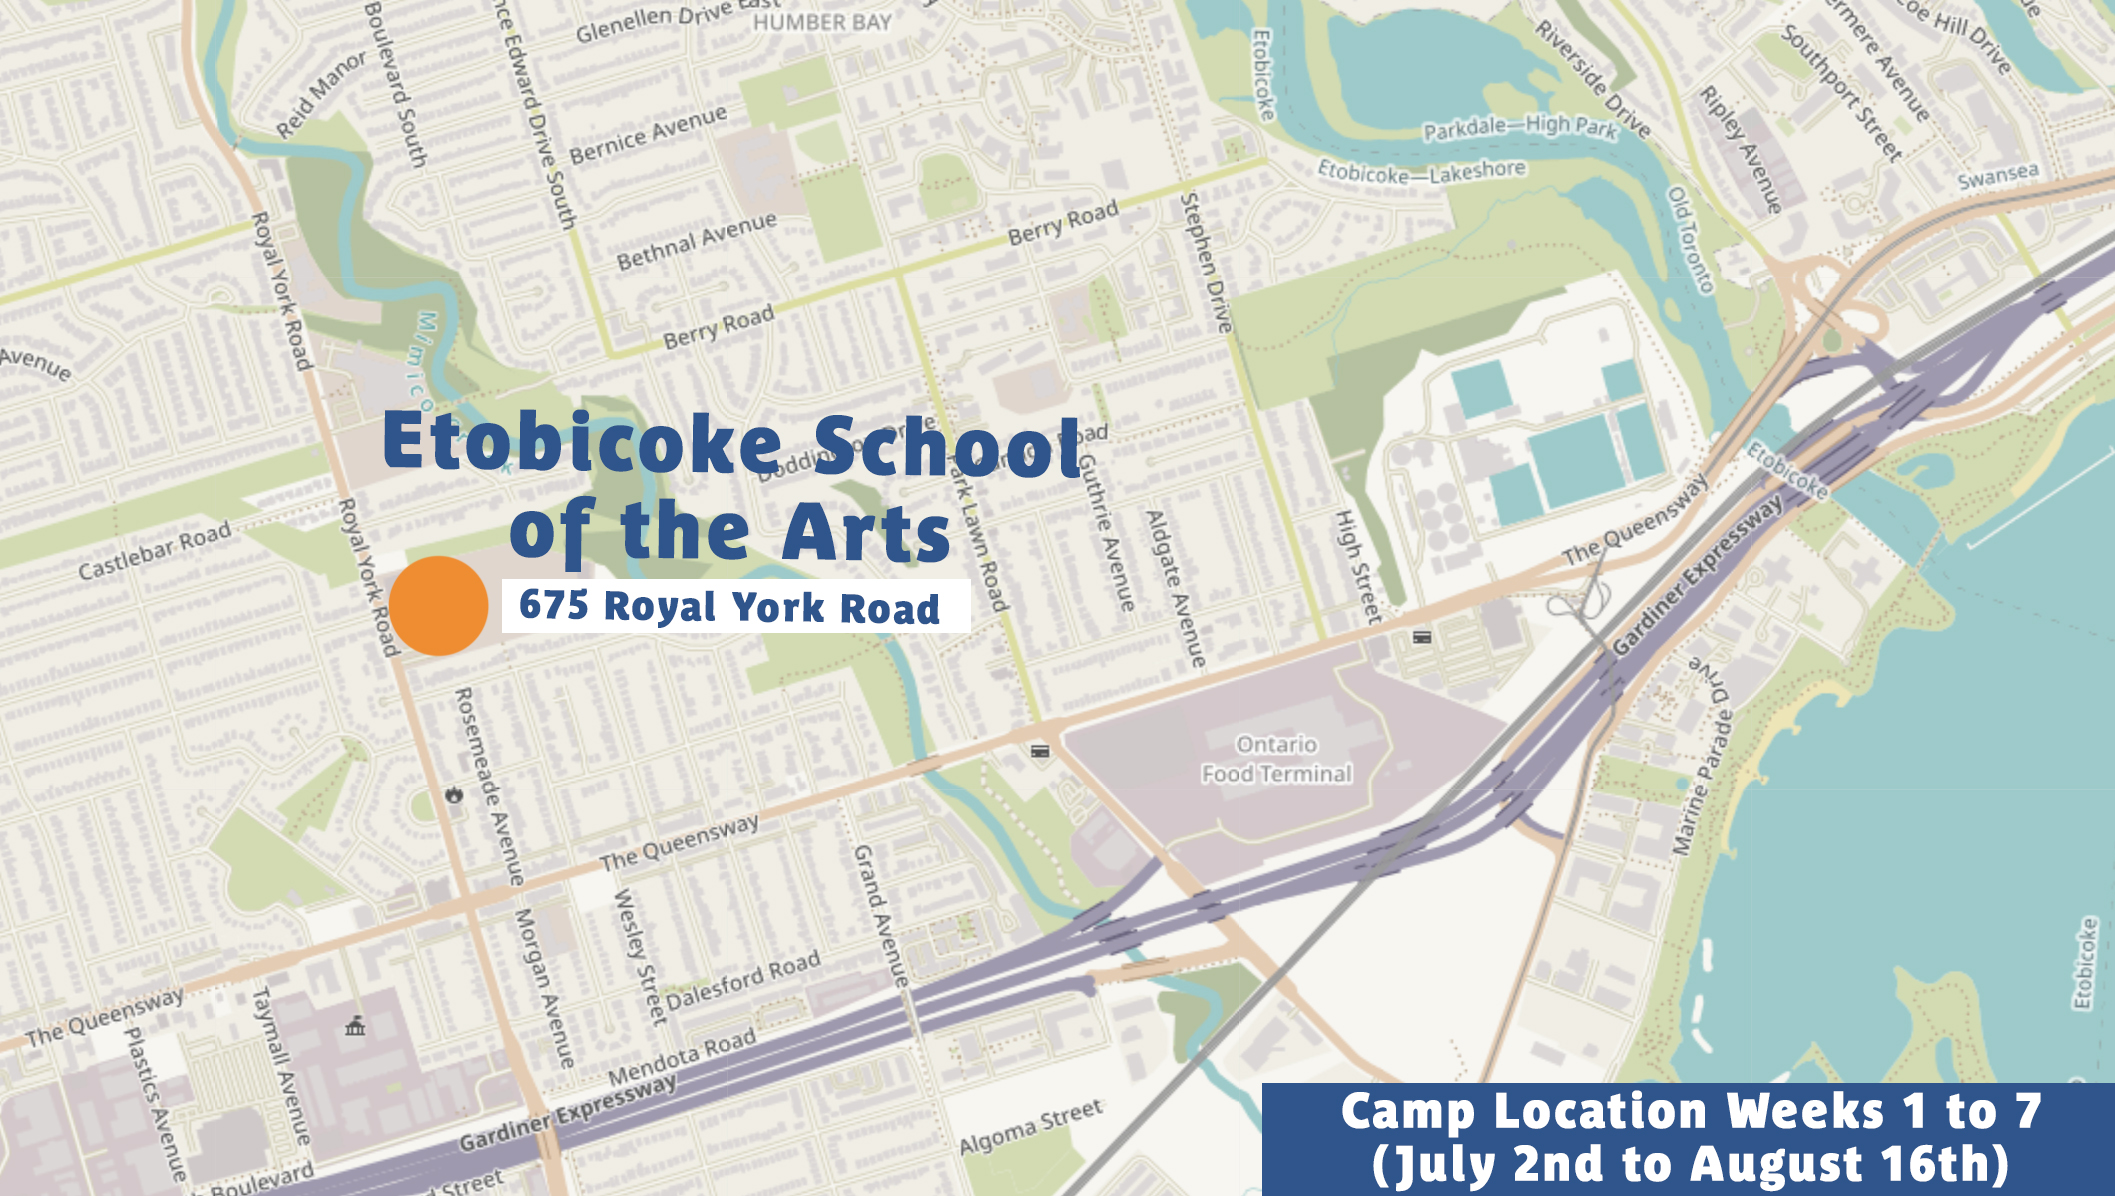 Etobicoke Summer Camp Location